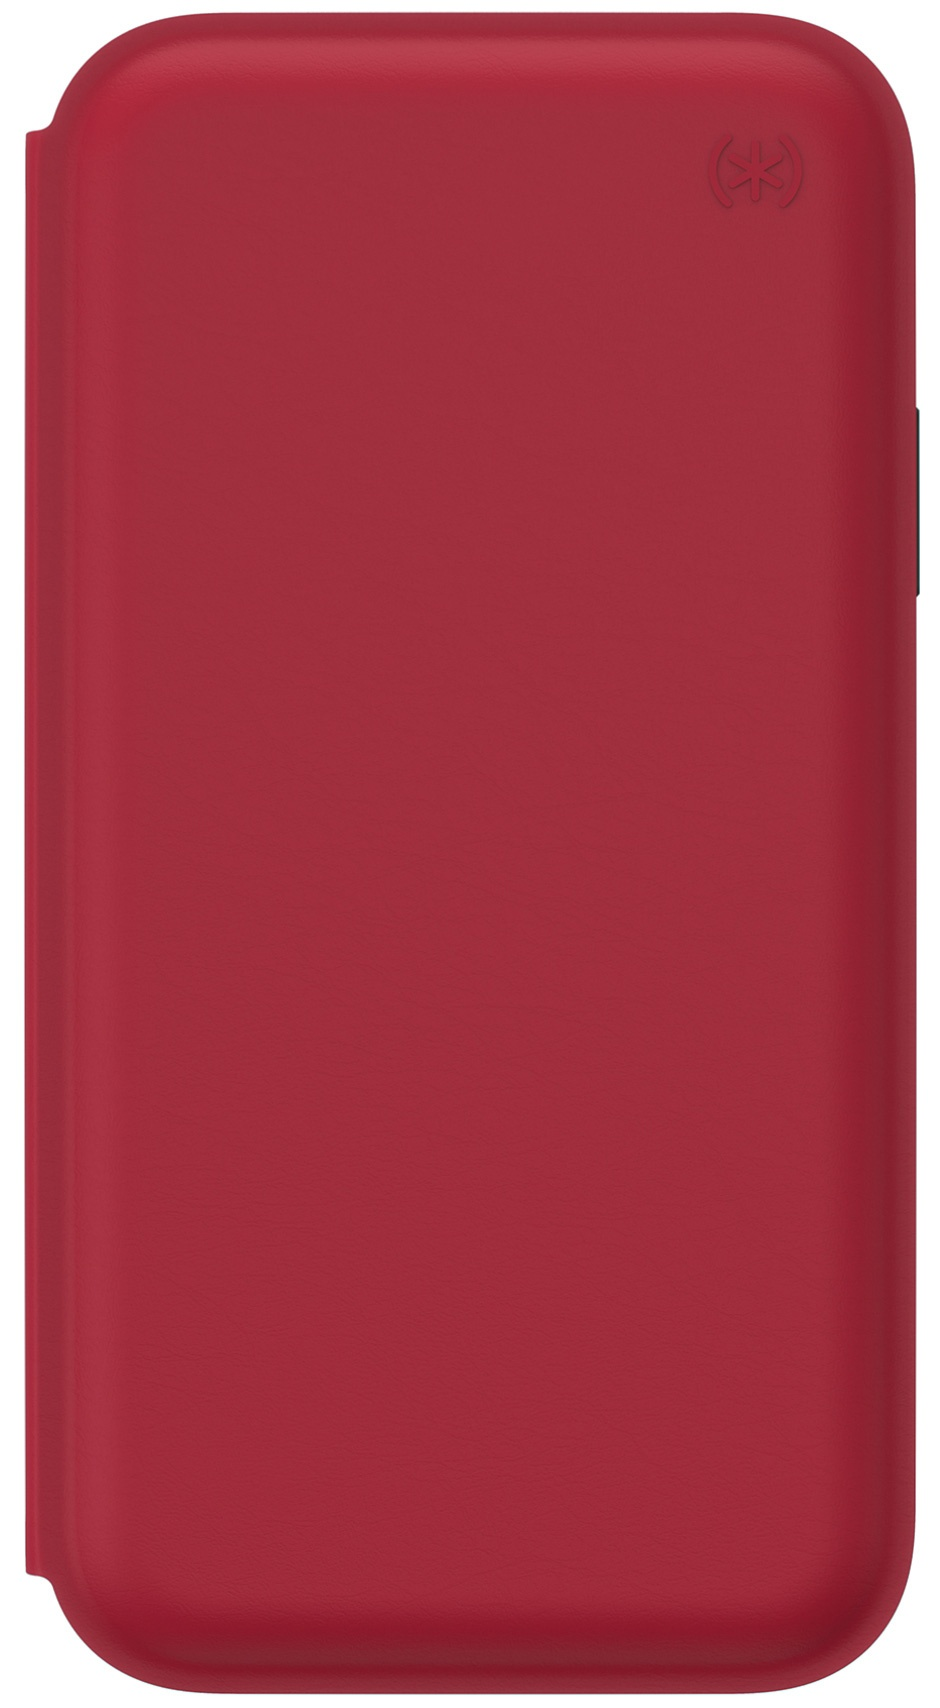 new products 0e462 5d6bb Speck phone case Presidio Folio LeatherApple iPhone XR red ...